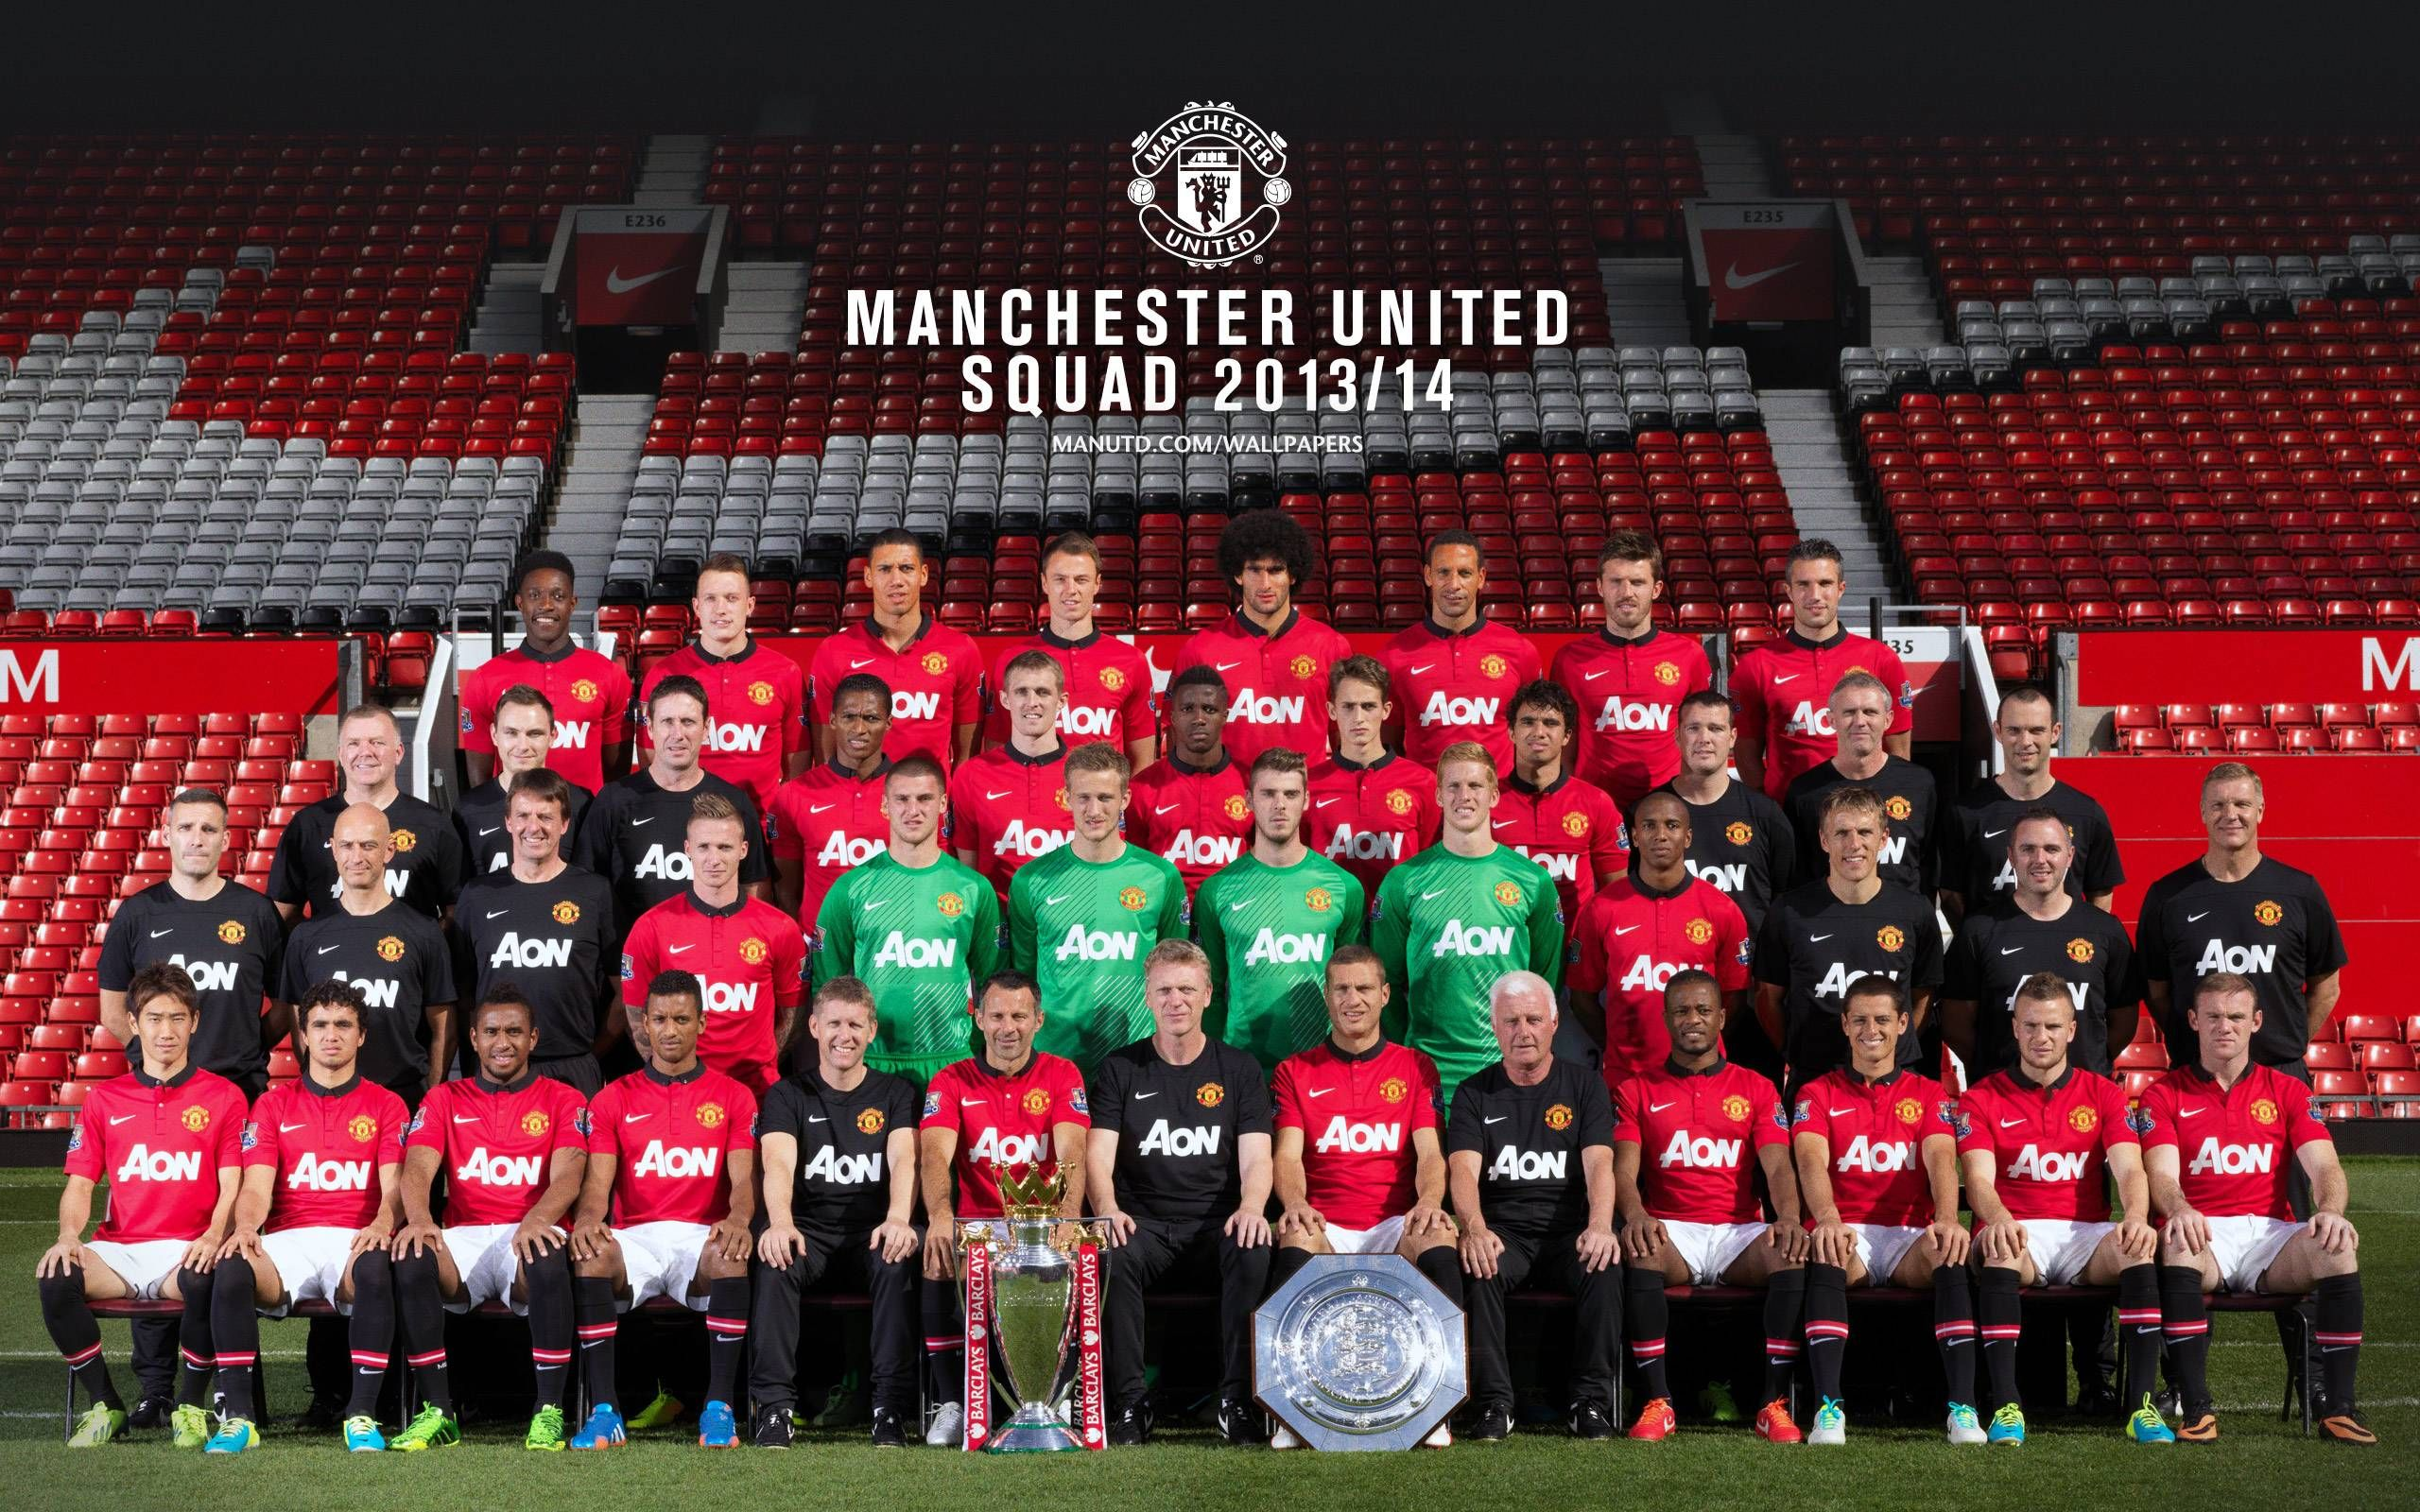 Man Utd Wallpapers 2017 Wallpaper Cave Manchester United Manchester United Team Official Manchester United Website